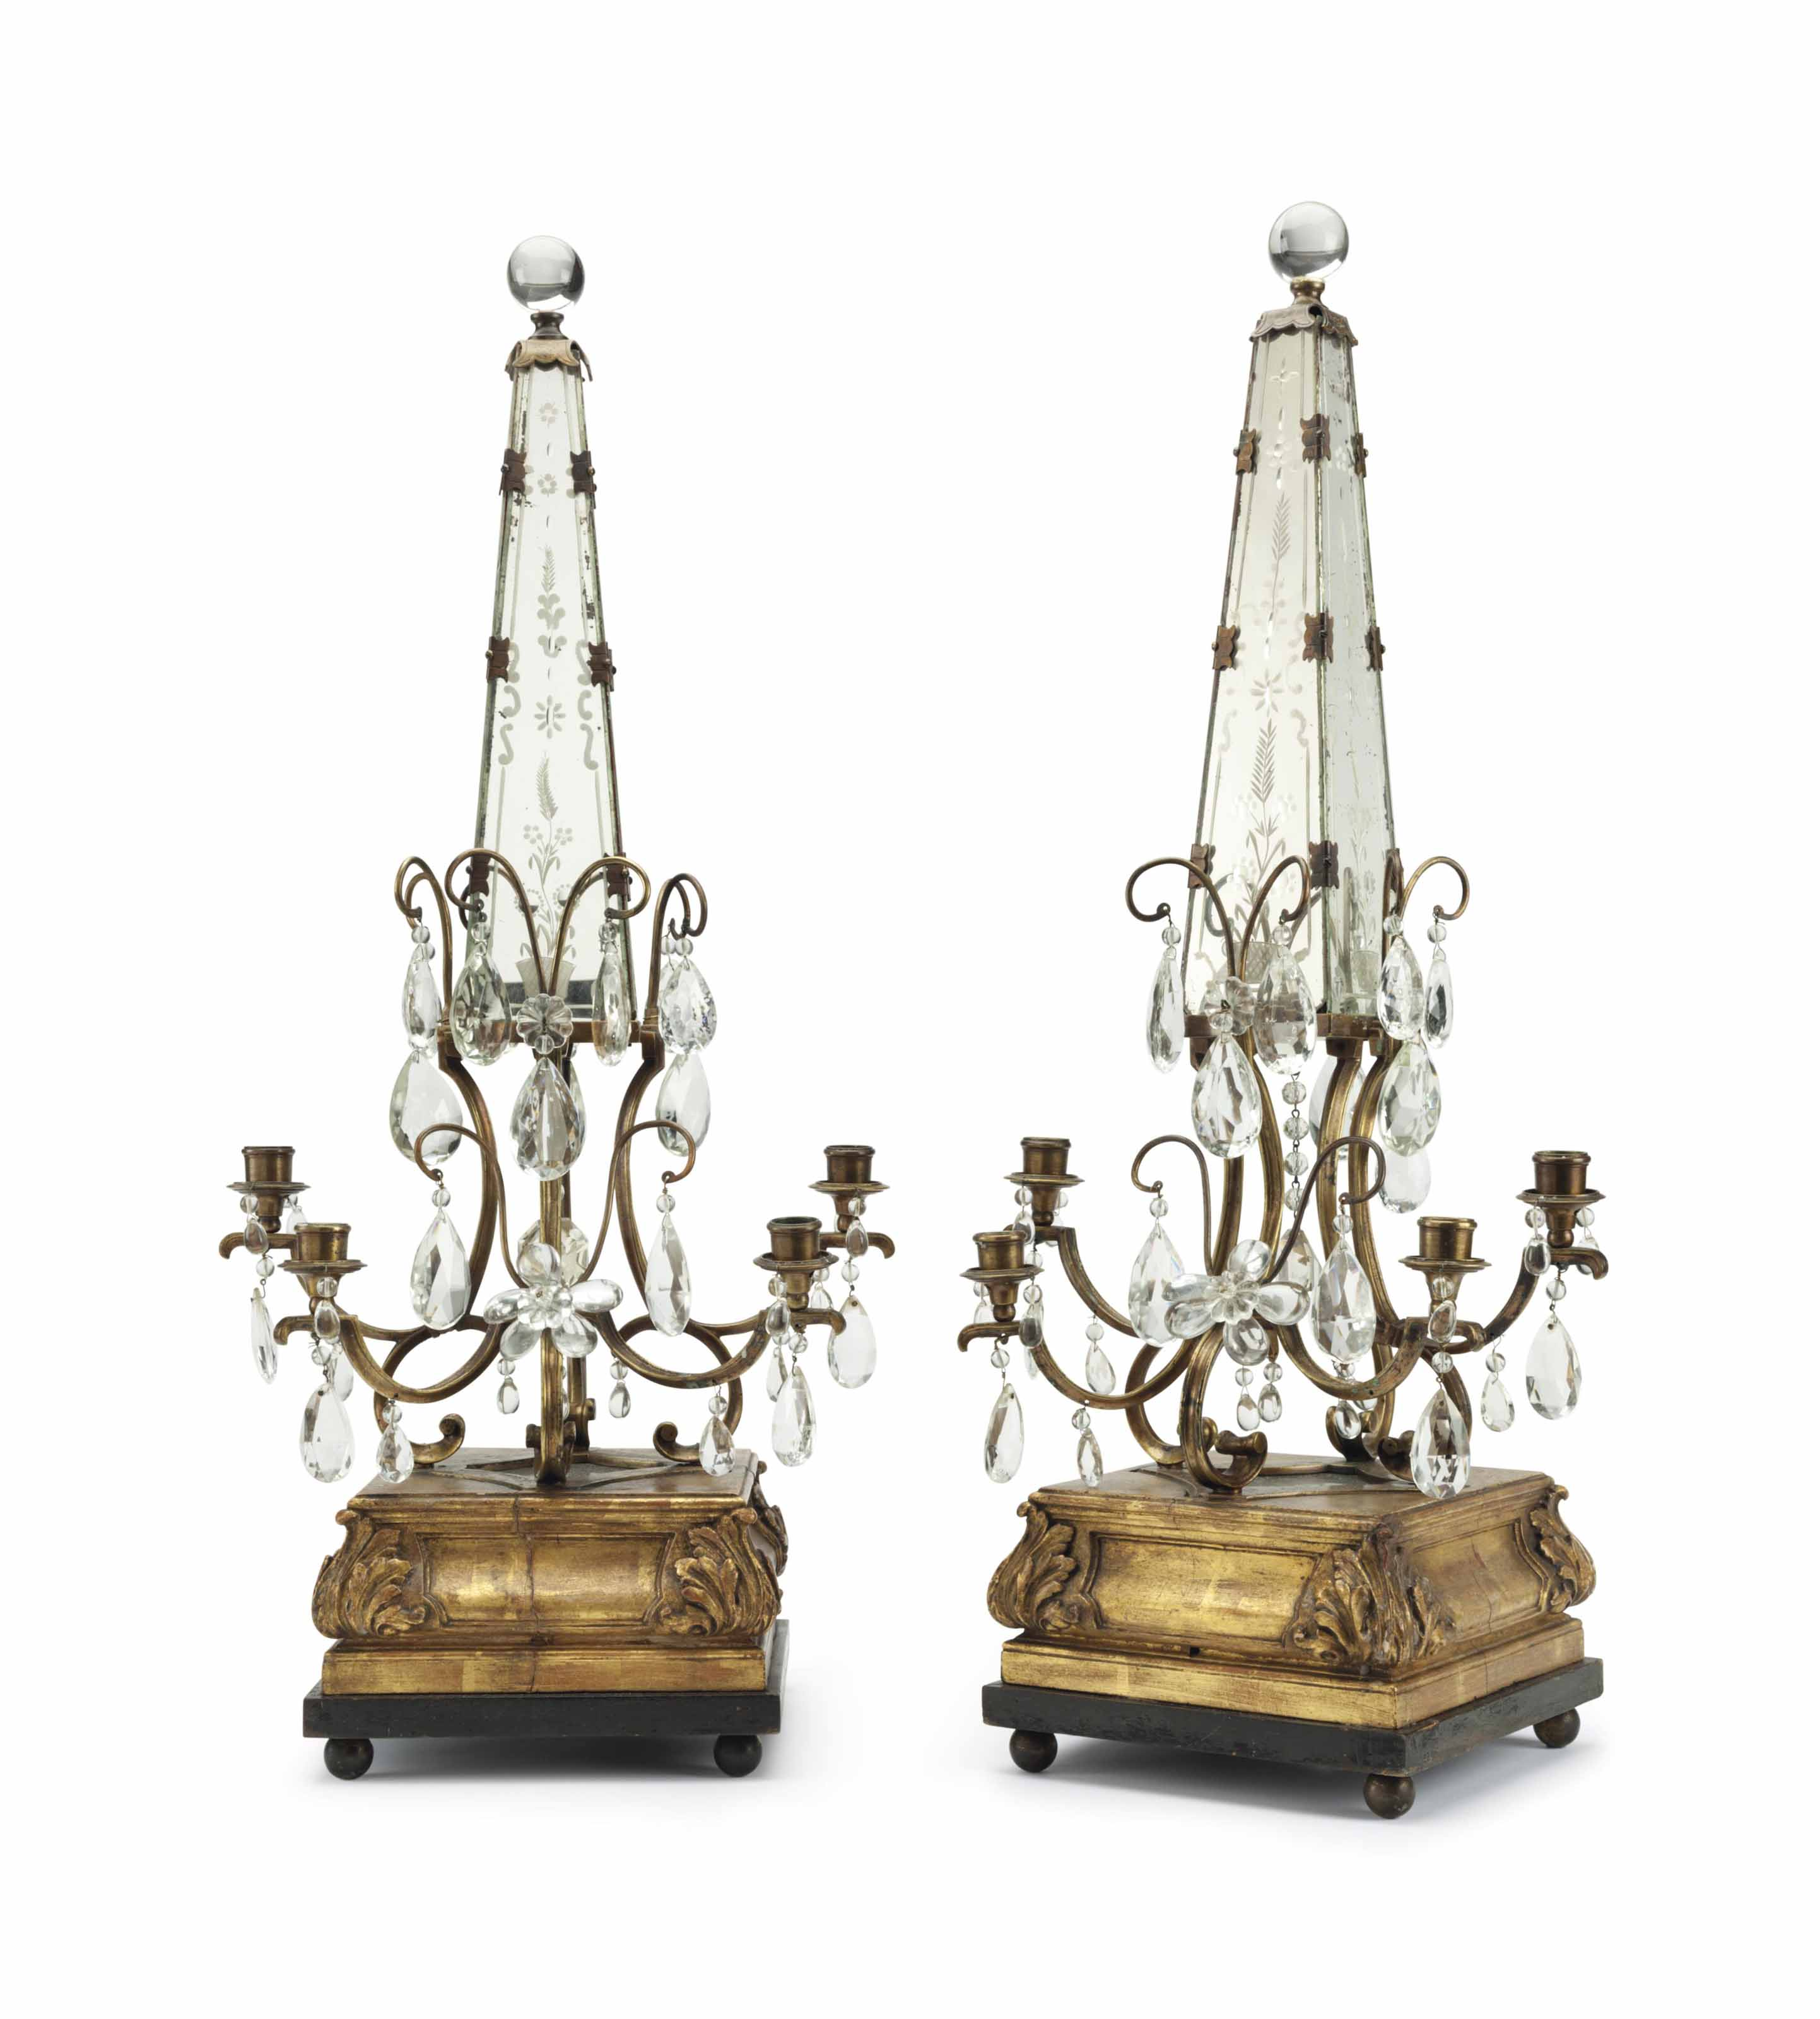 A PAIR OF FRENCH GILTWOOD, GIL